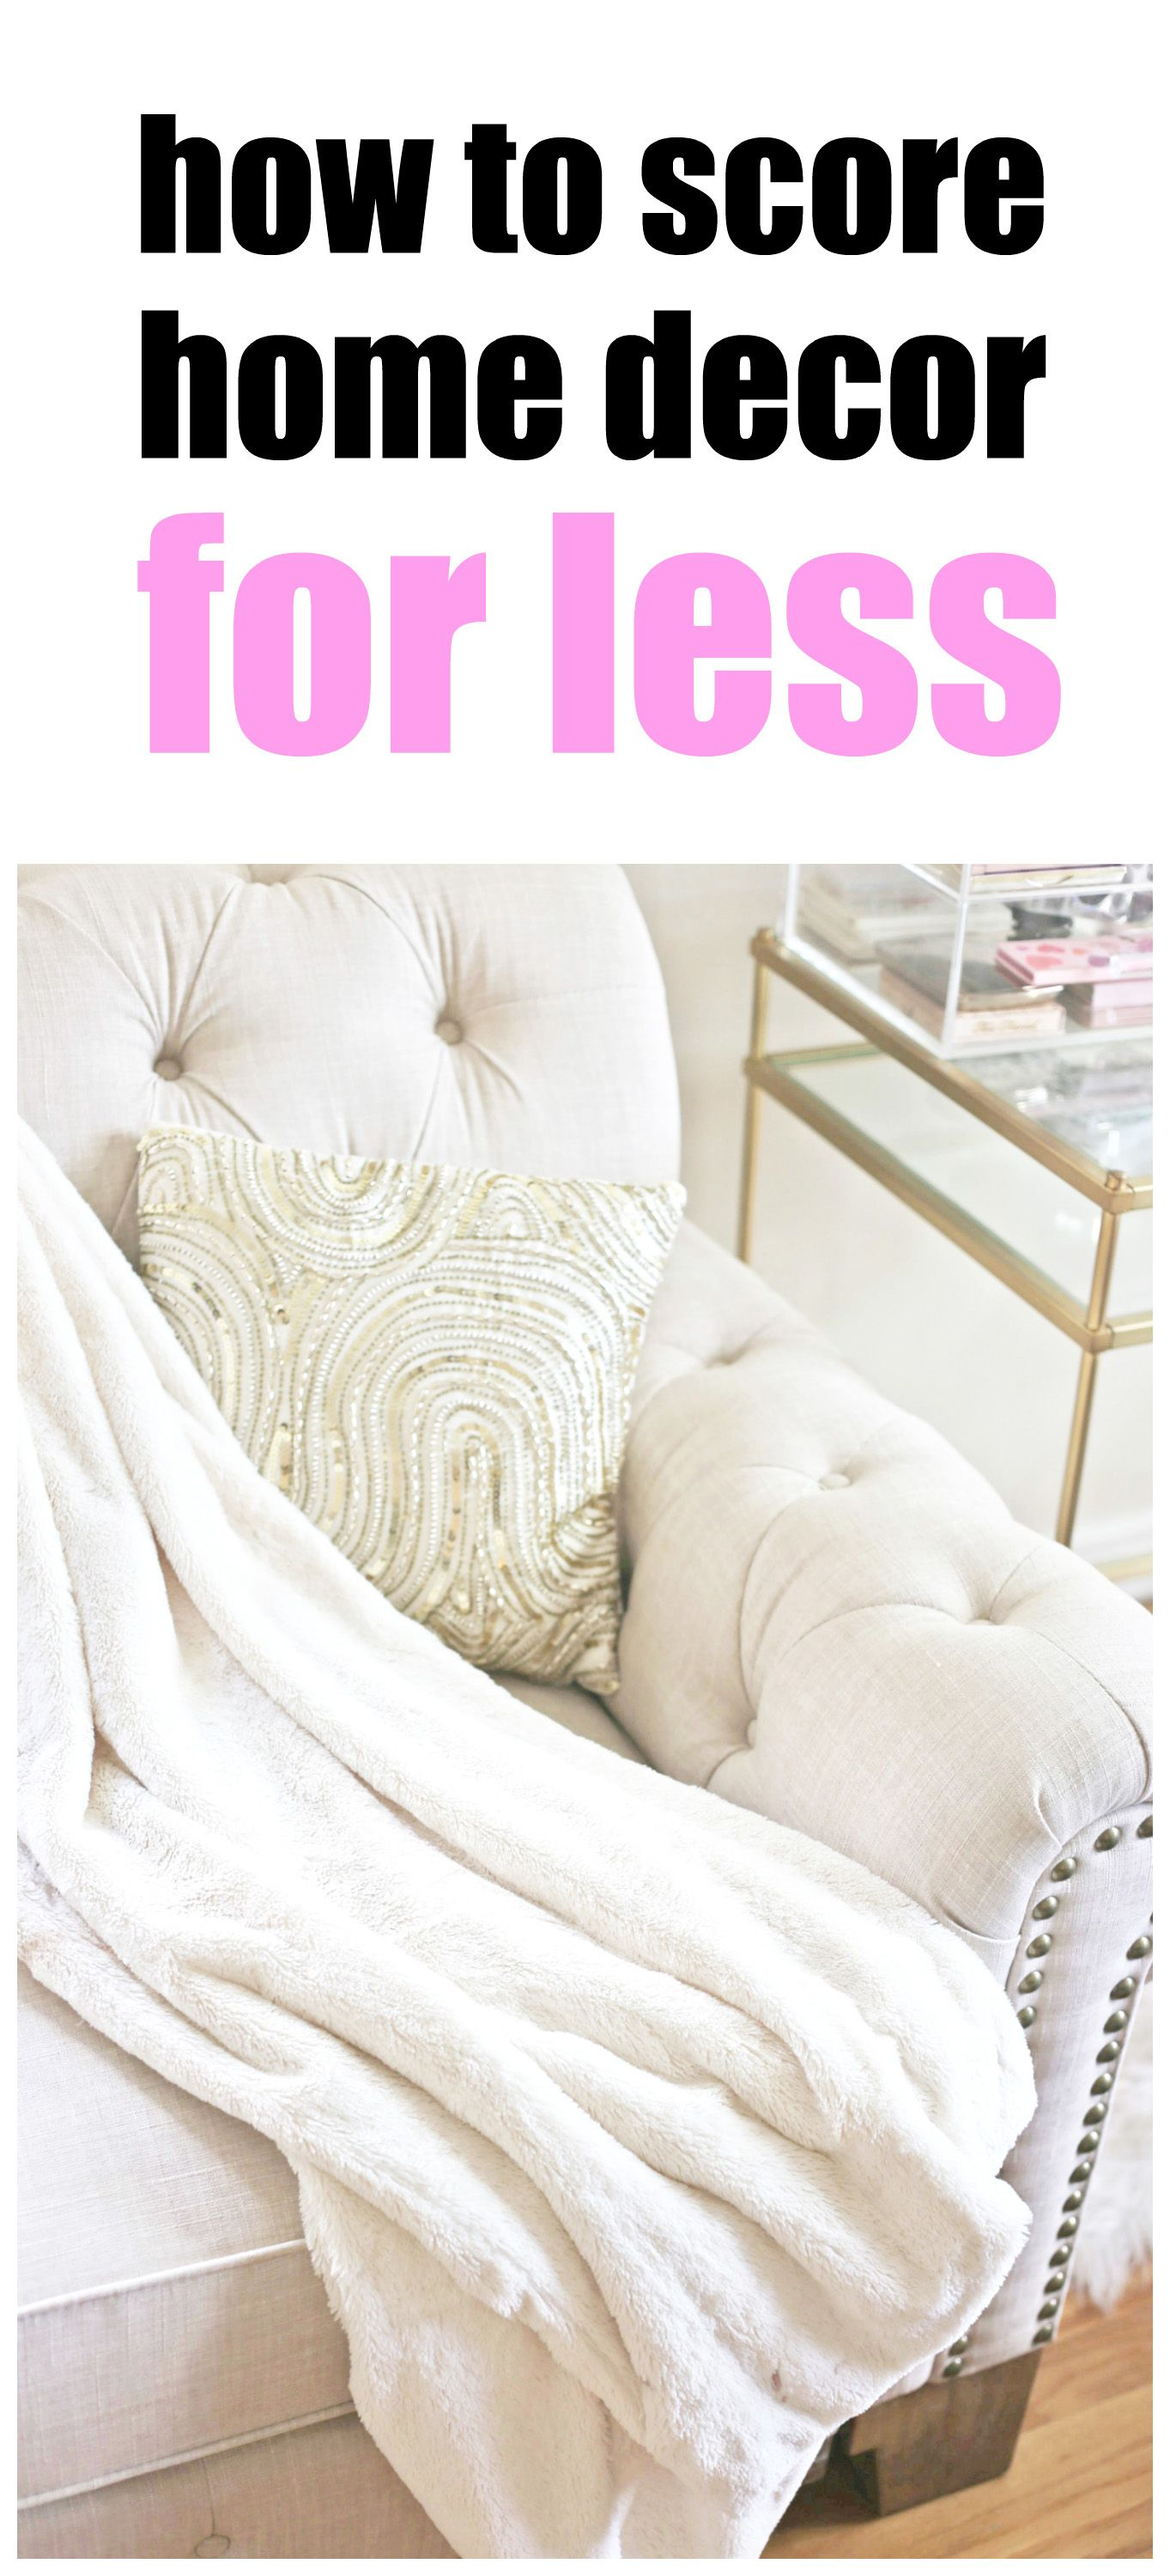 Great How I Saved A TON Of Money On Home Decor! | Fashion, Beauty And